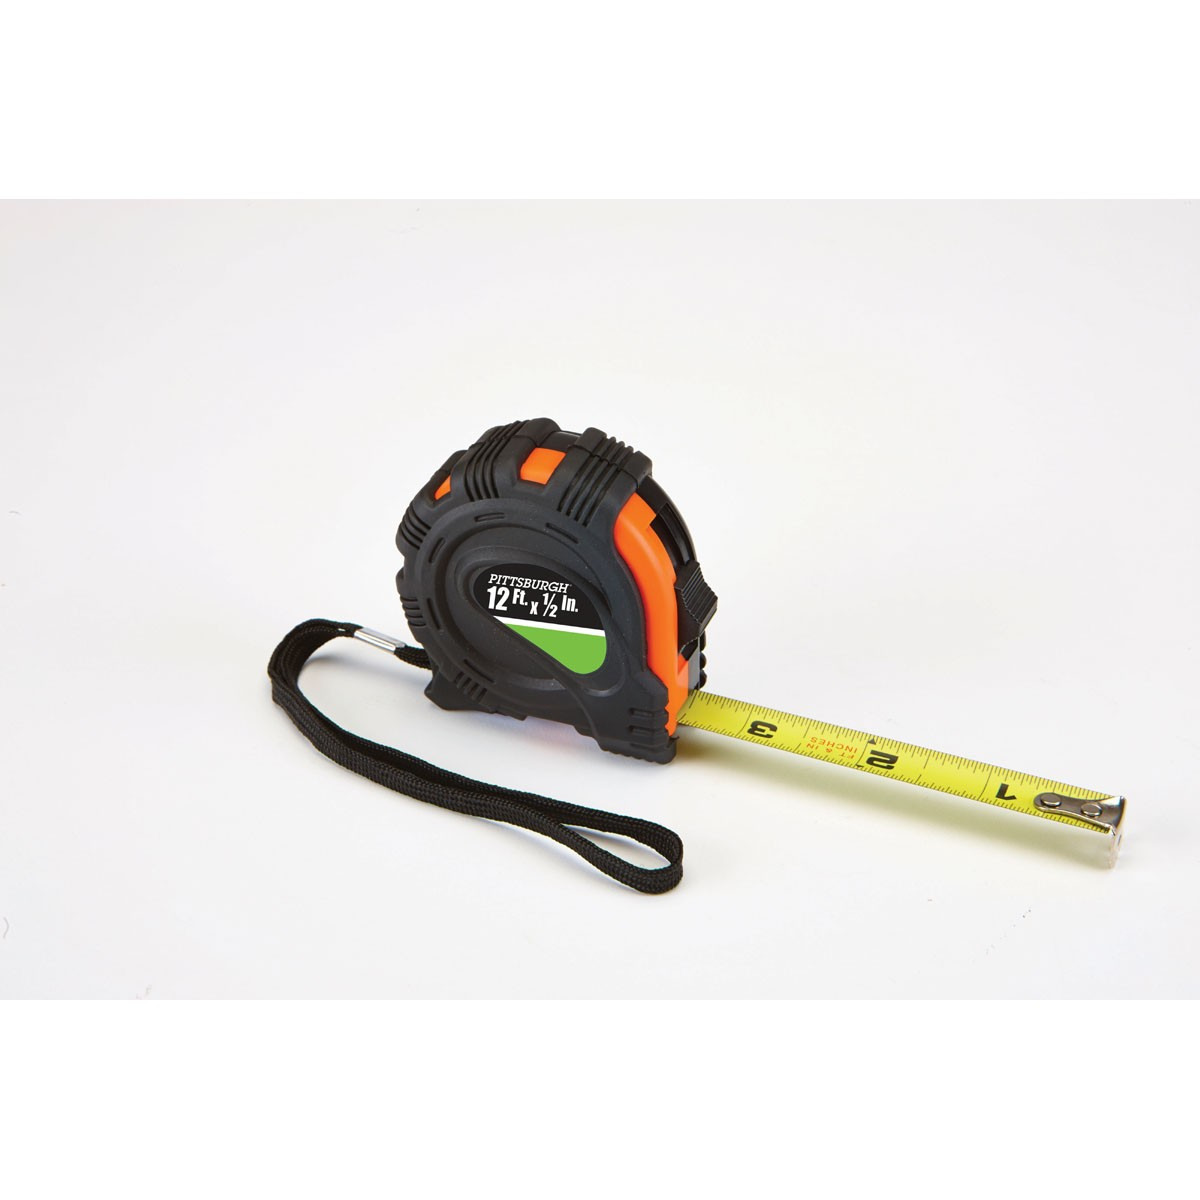 12 ft. x 1/2 in. QuikFind Tape Measure with ABS Casing